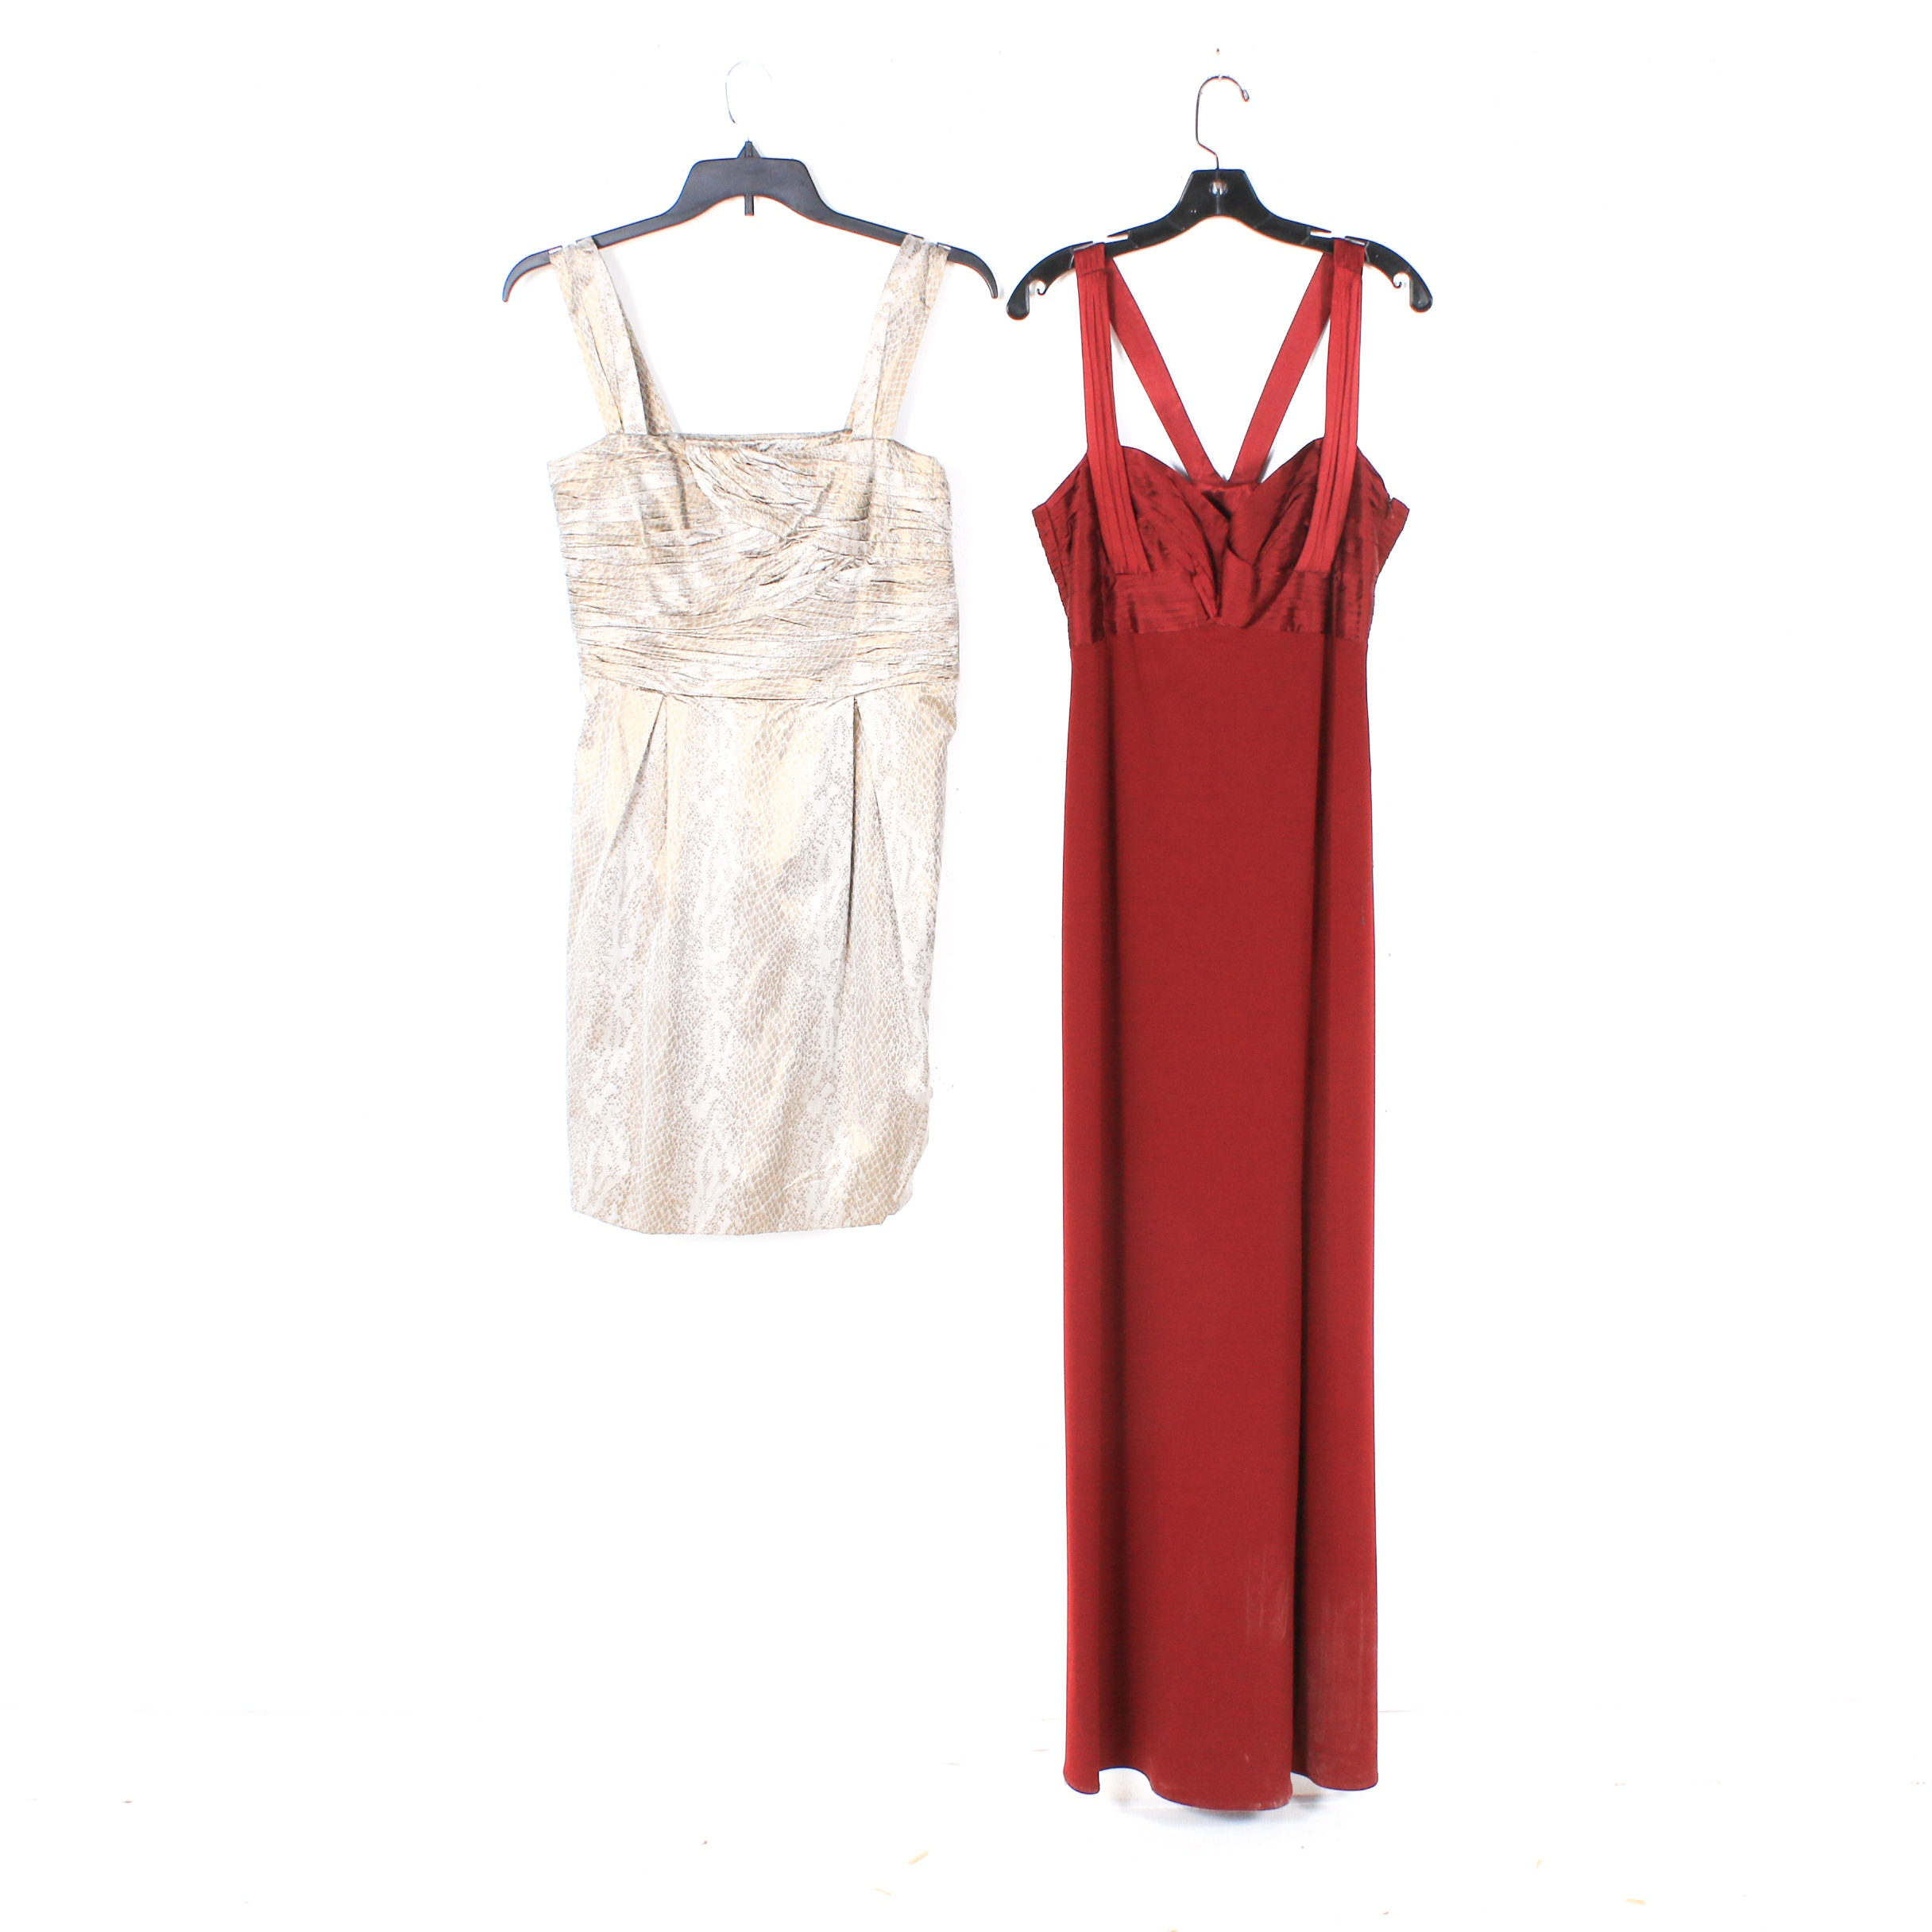 Diane Von Furstenberg and Laundry by Shelli Segal Sleeveless Dresses